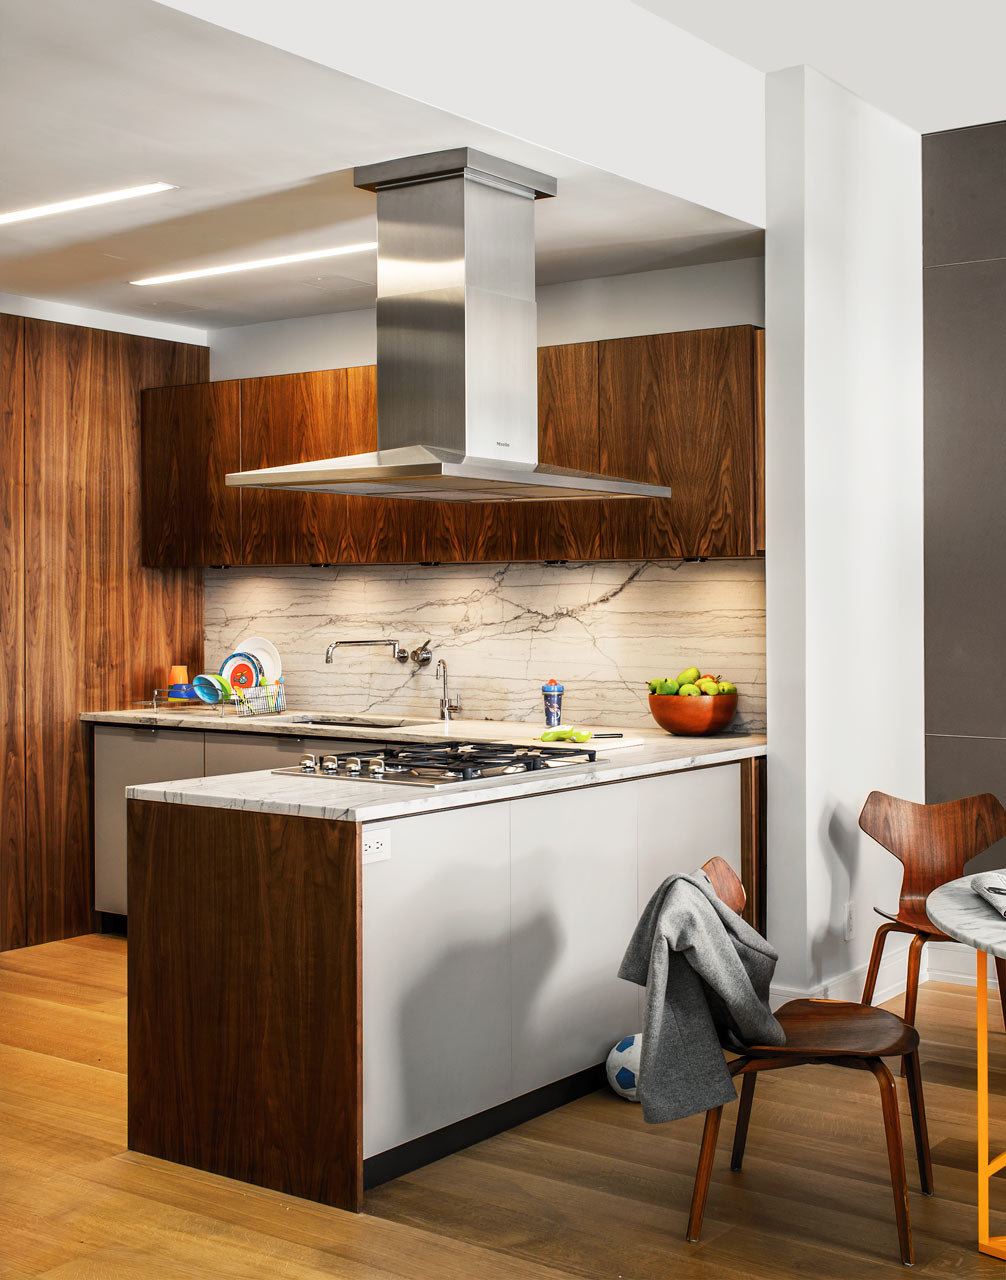 66-9th-Ave-EcoFriendly-Apt-8-kitchen